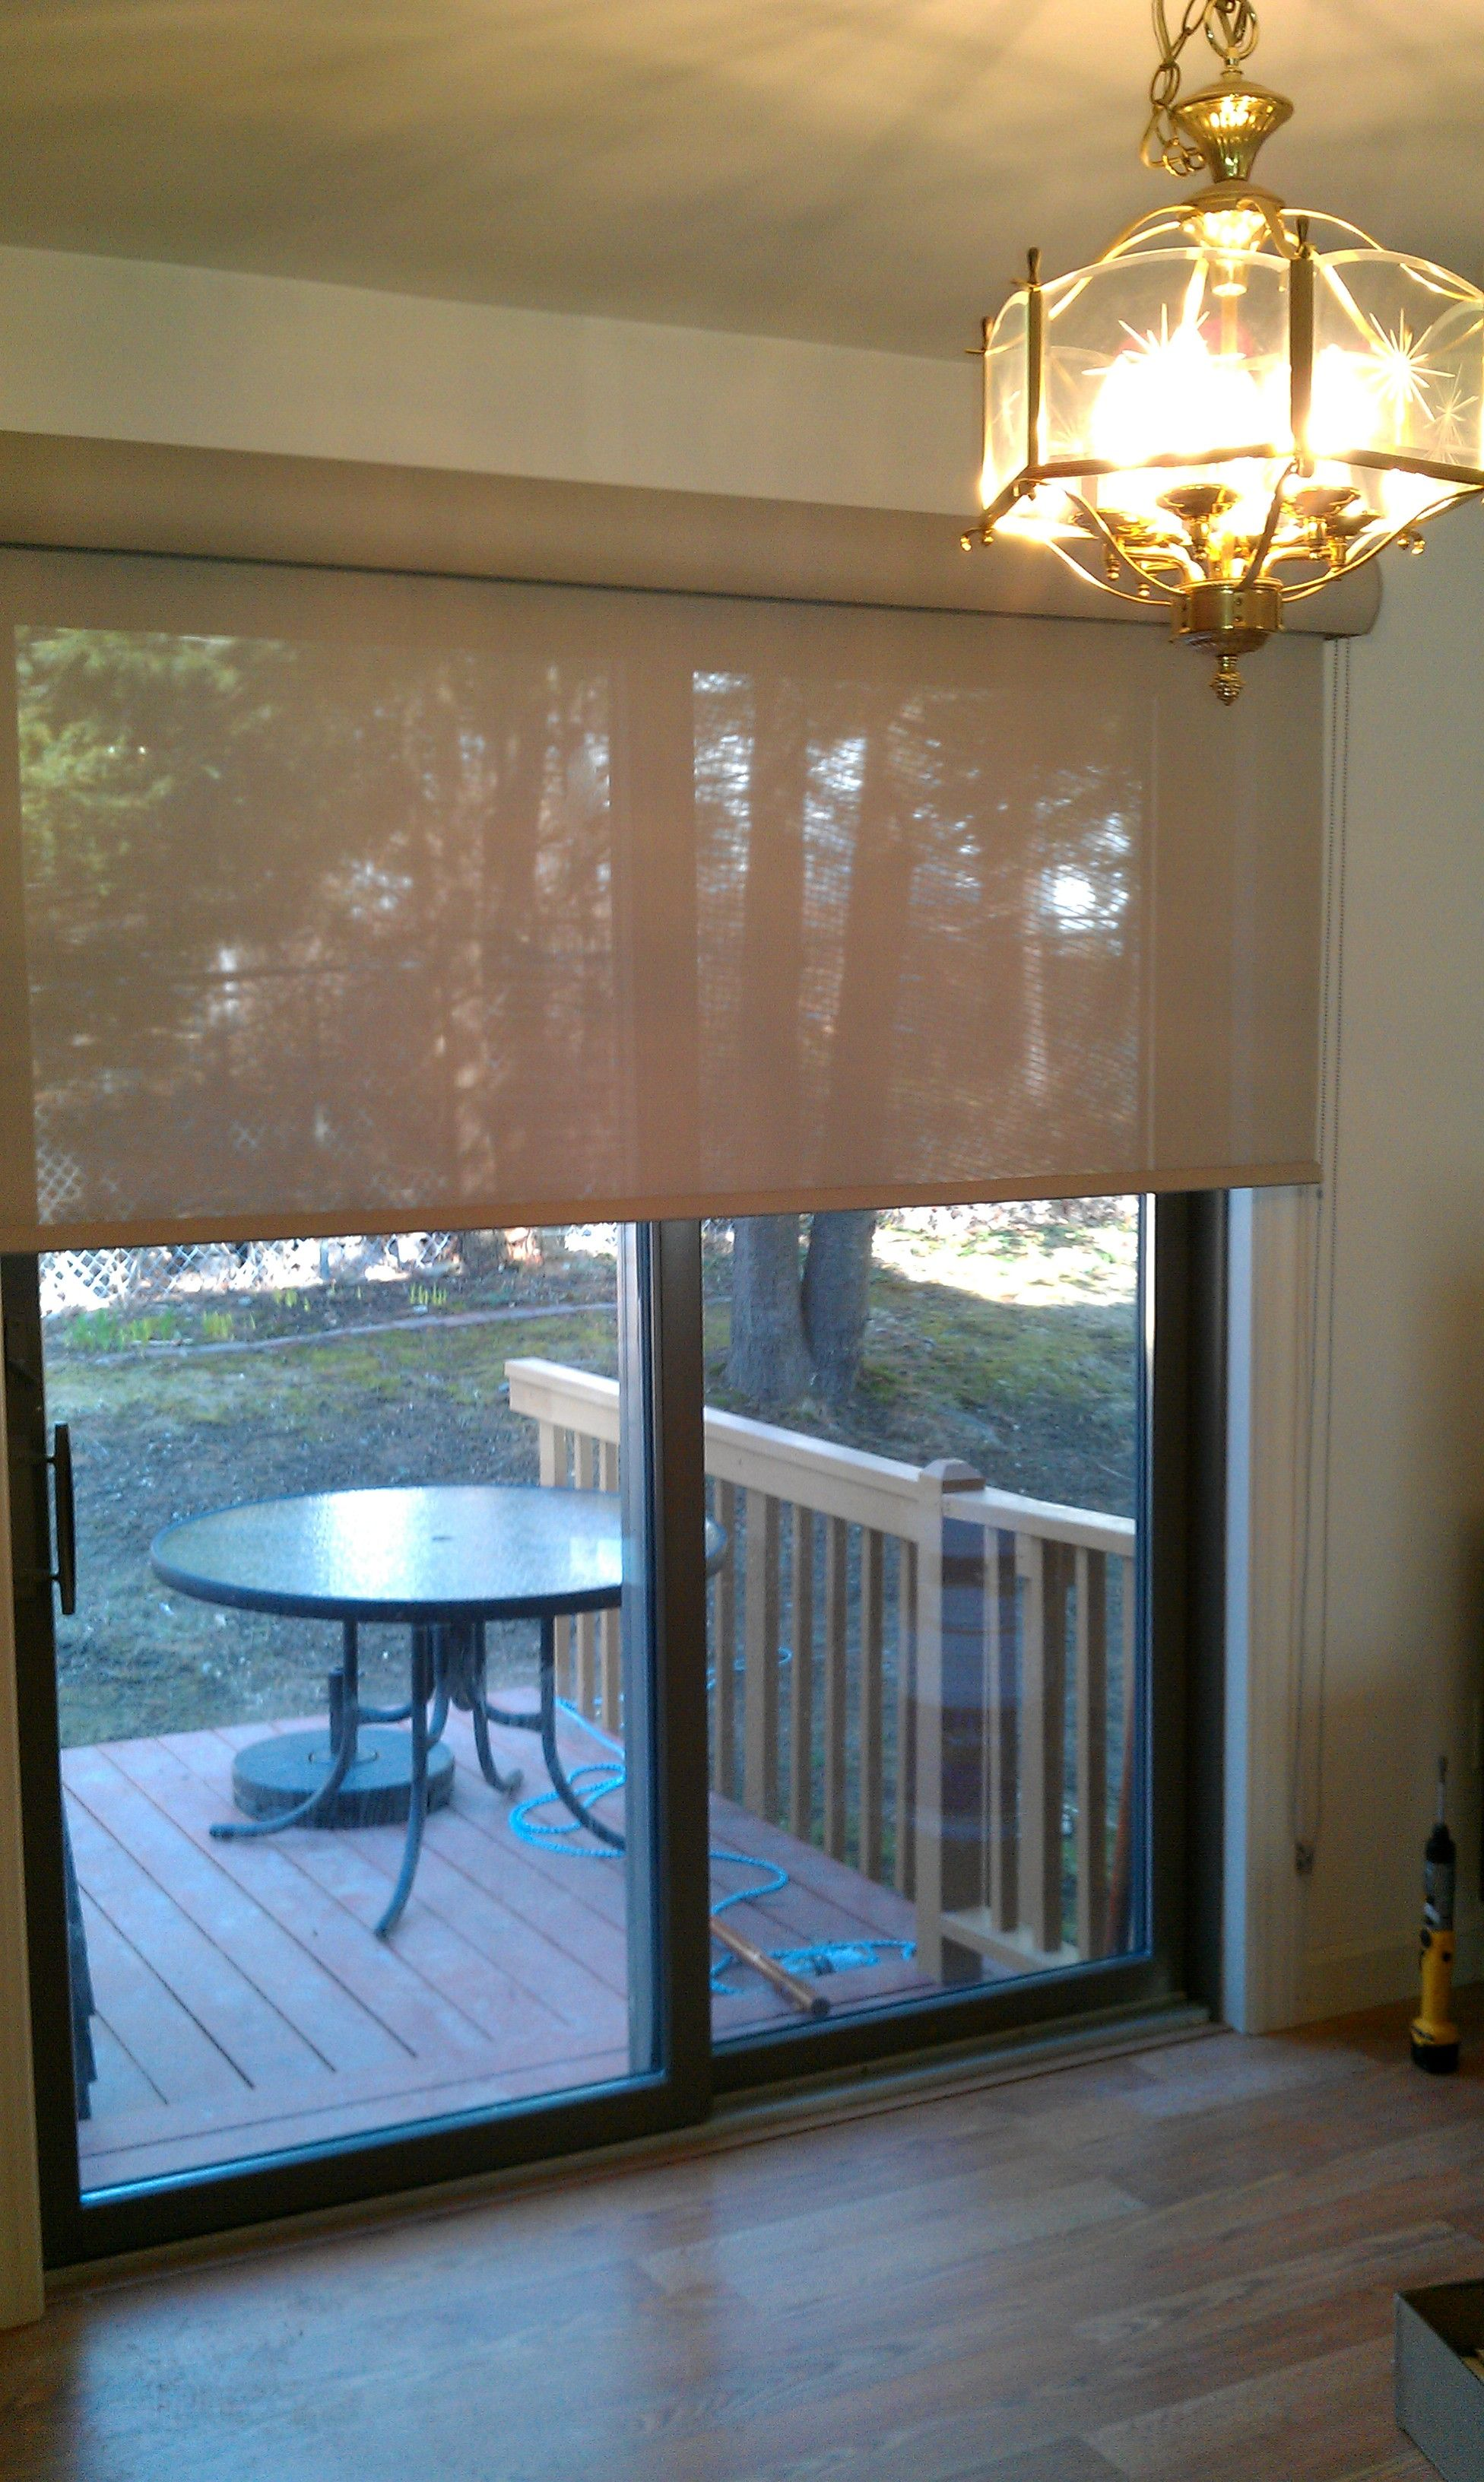 Solar Roller Shade On A Sliding Door Solutions Sliders Patio